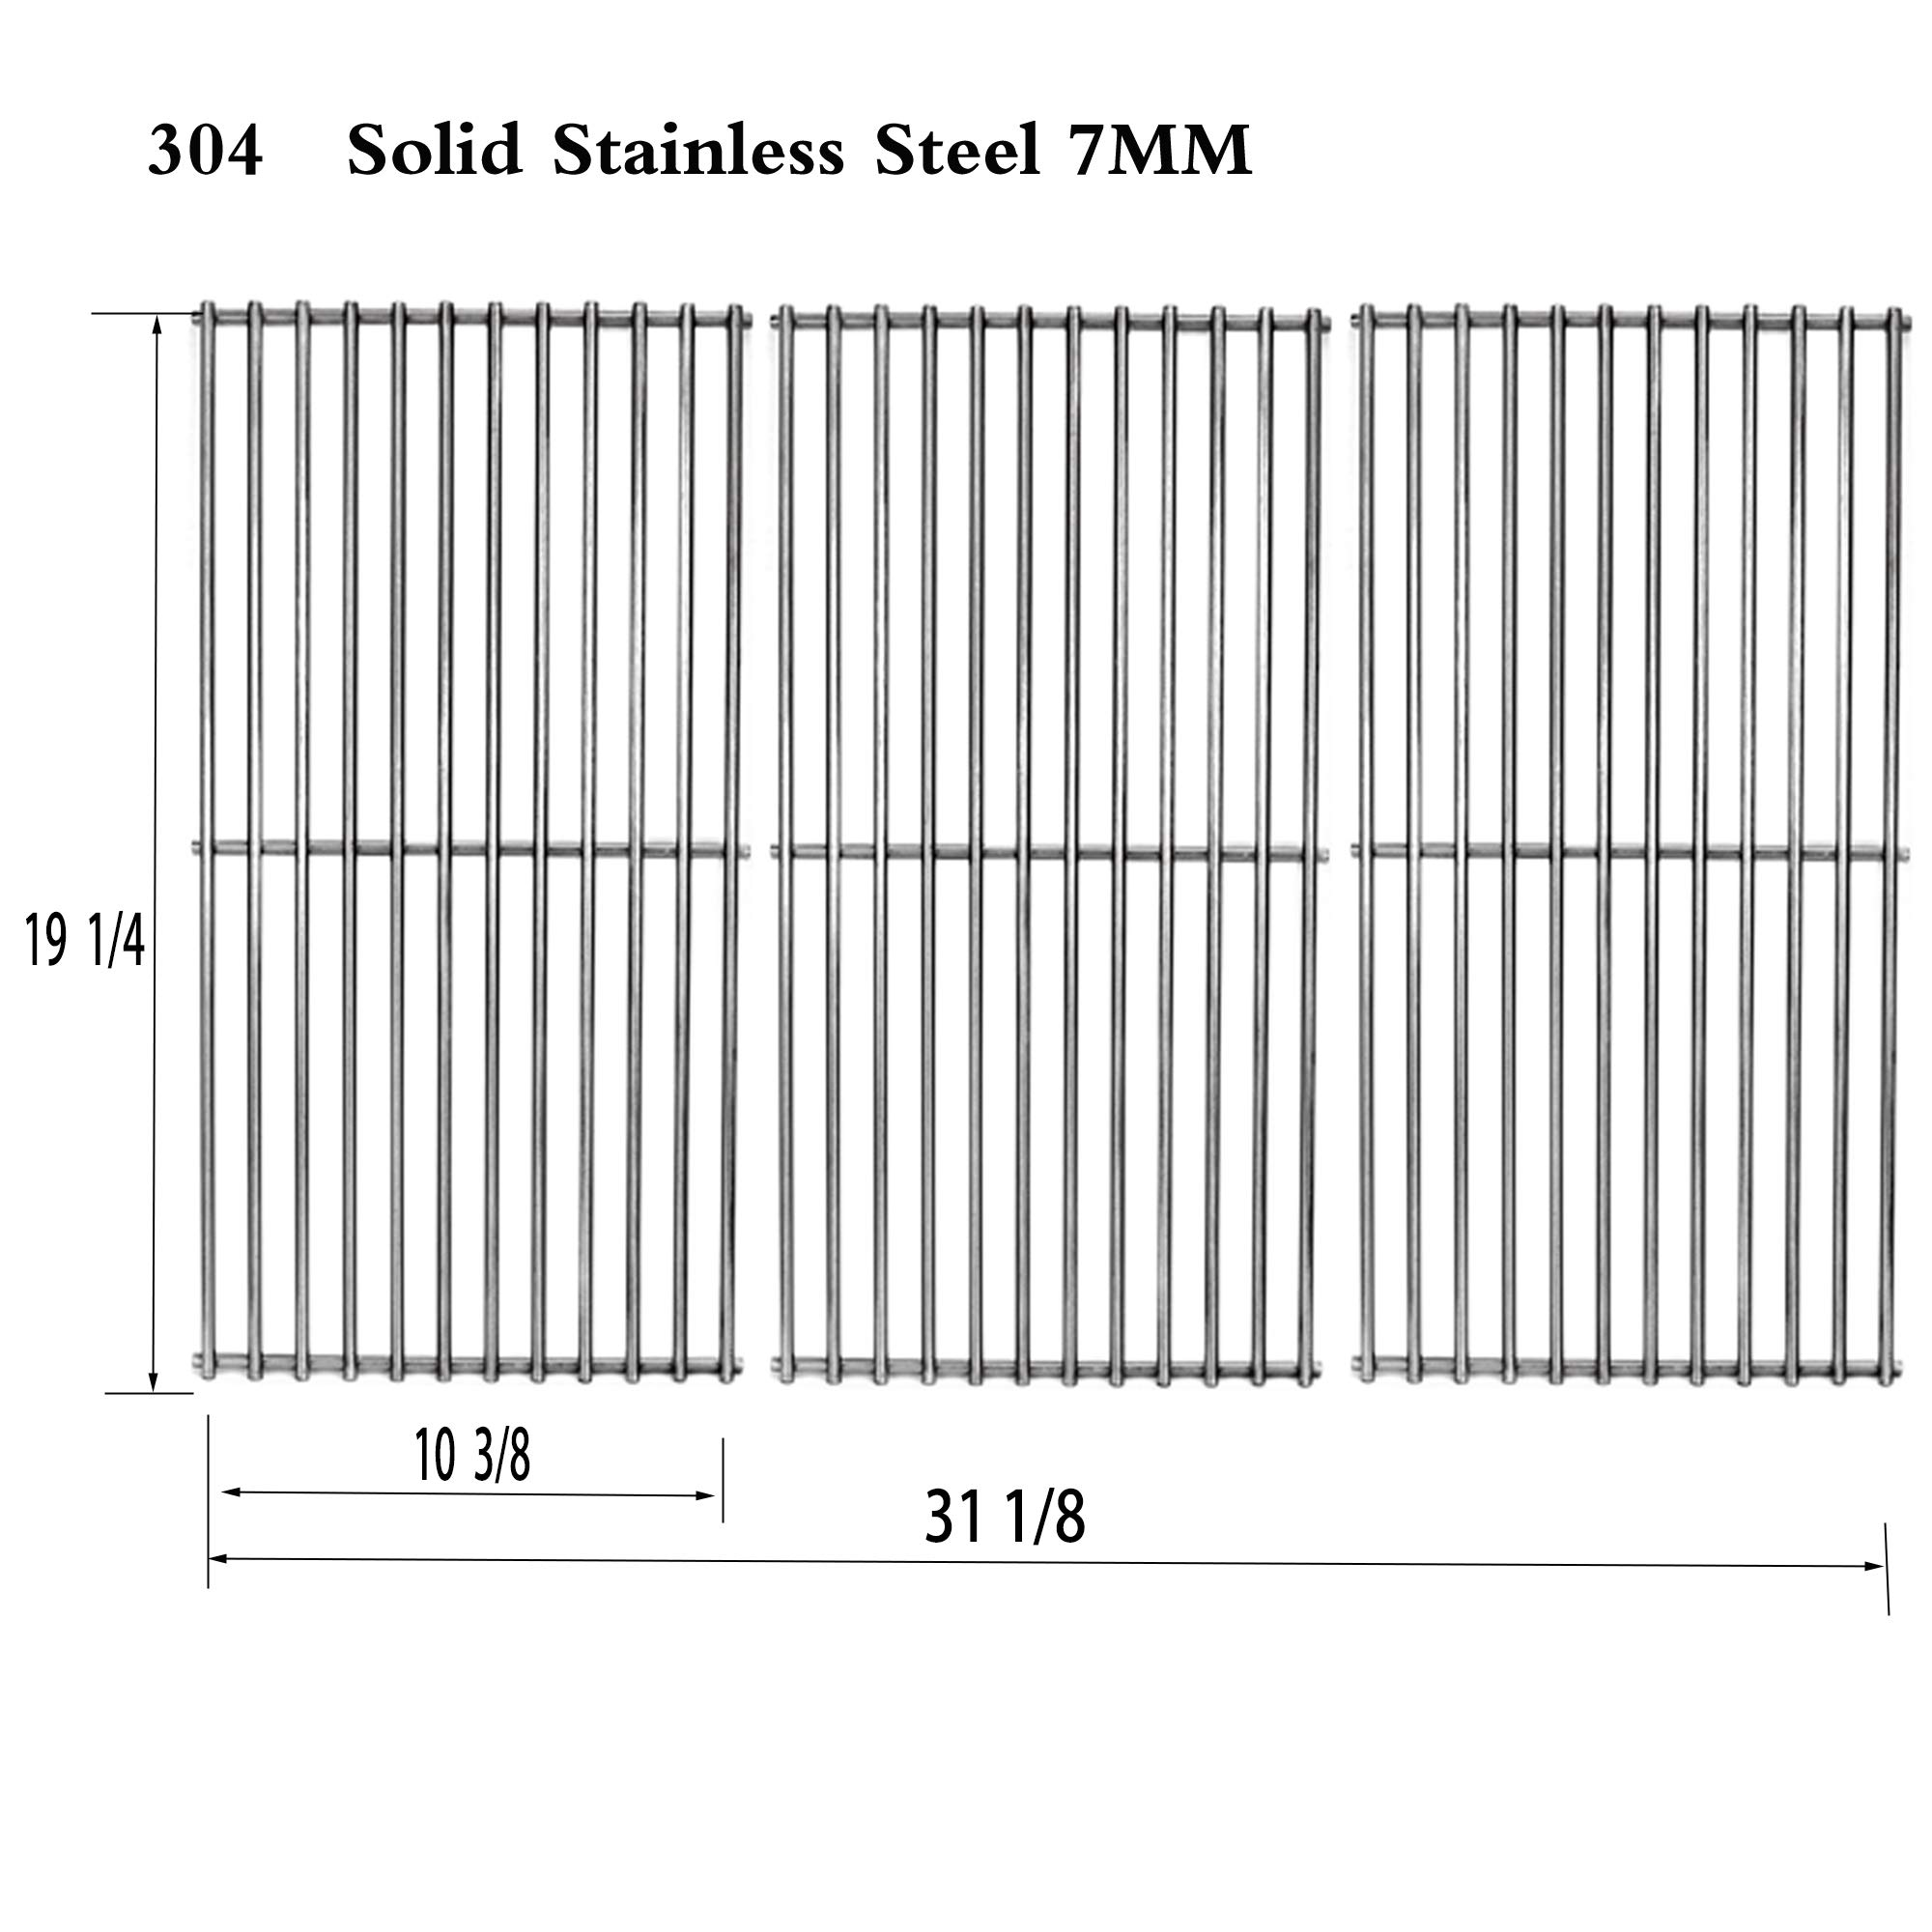 S591SC (3-Pack) Stainless Steel Wire Cooking Grid Grates Replacement for Select Gas Grill Models by Brinkmann, Charmglow, Costco, Jenn Air, Members, Nexgrill and Others (19 1/4 Stainless Steel) by Votenli